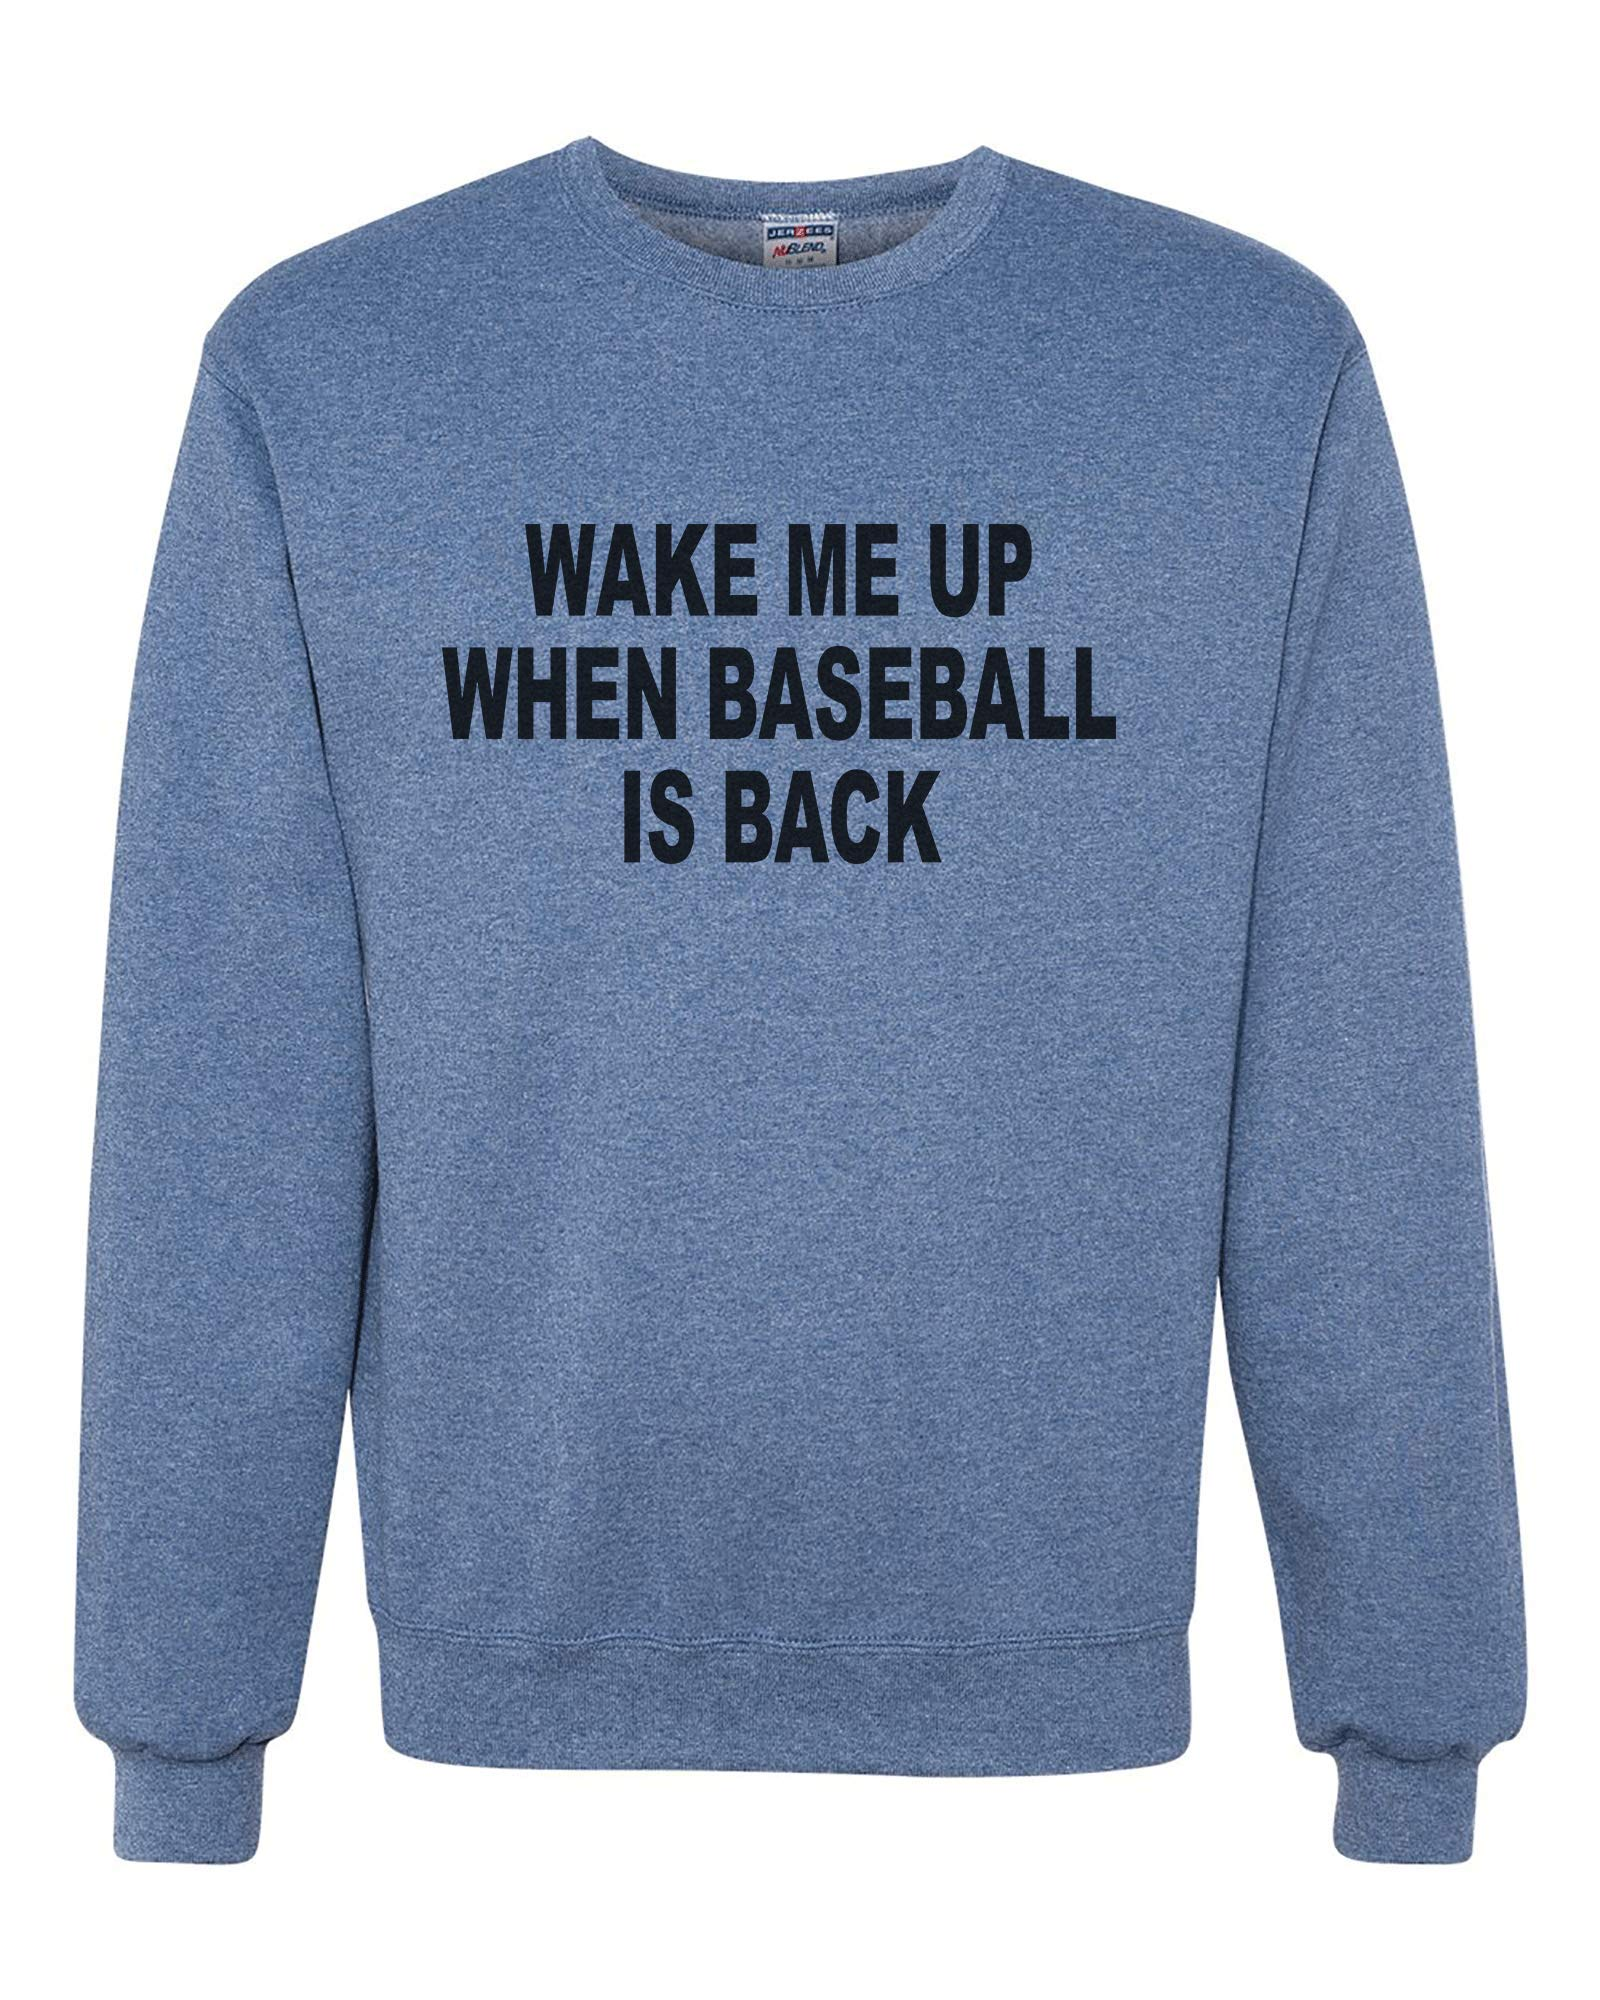 7 ate 9 Apparel Unisex Adult Wake Me When Baseball is Back Quarantine Blue Sweatshirt